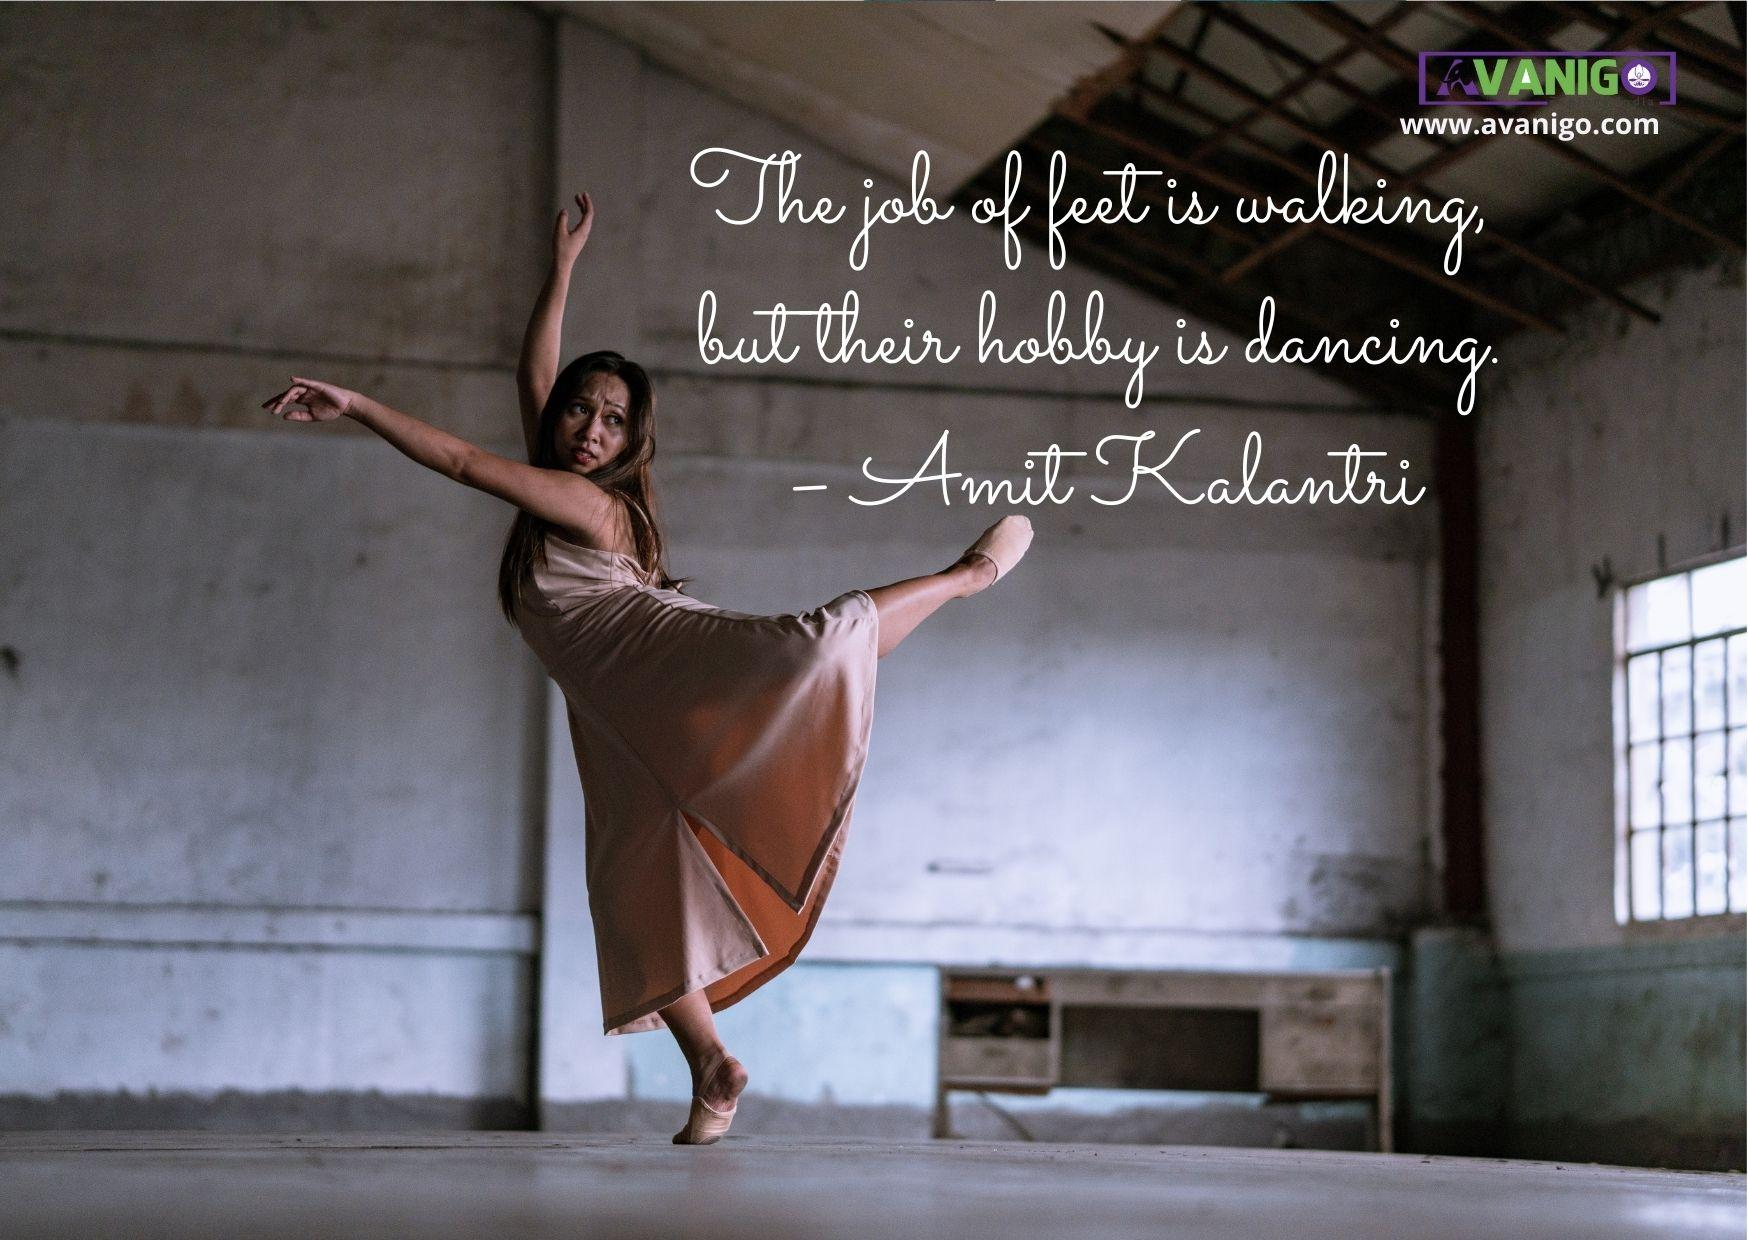 The job of feet's is walking, but their hobby is dancing.